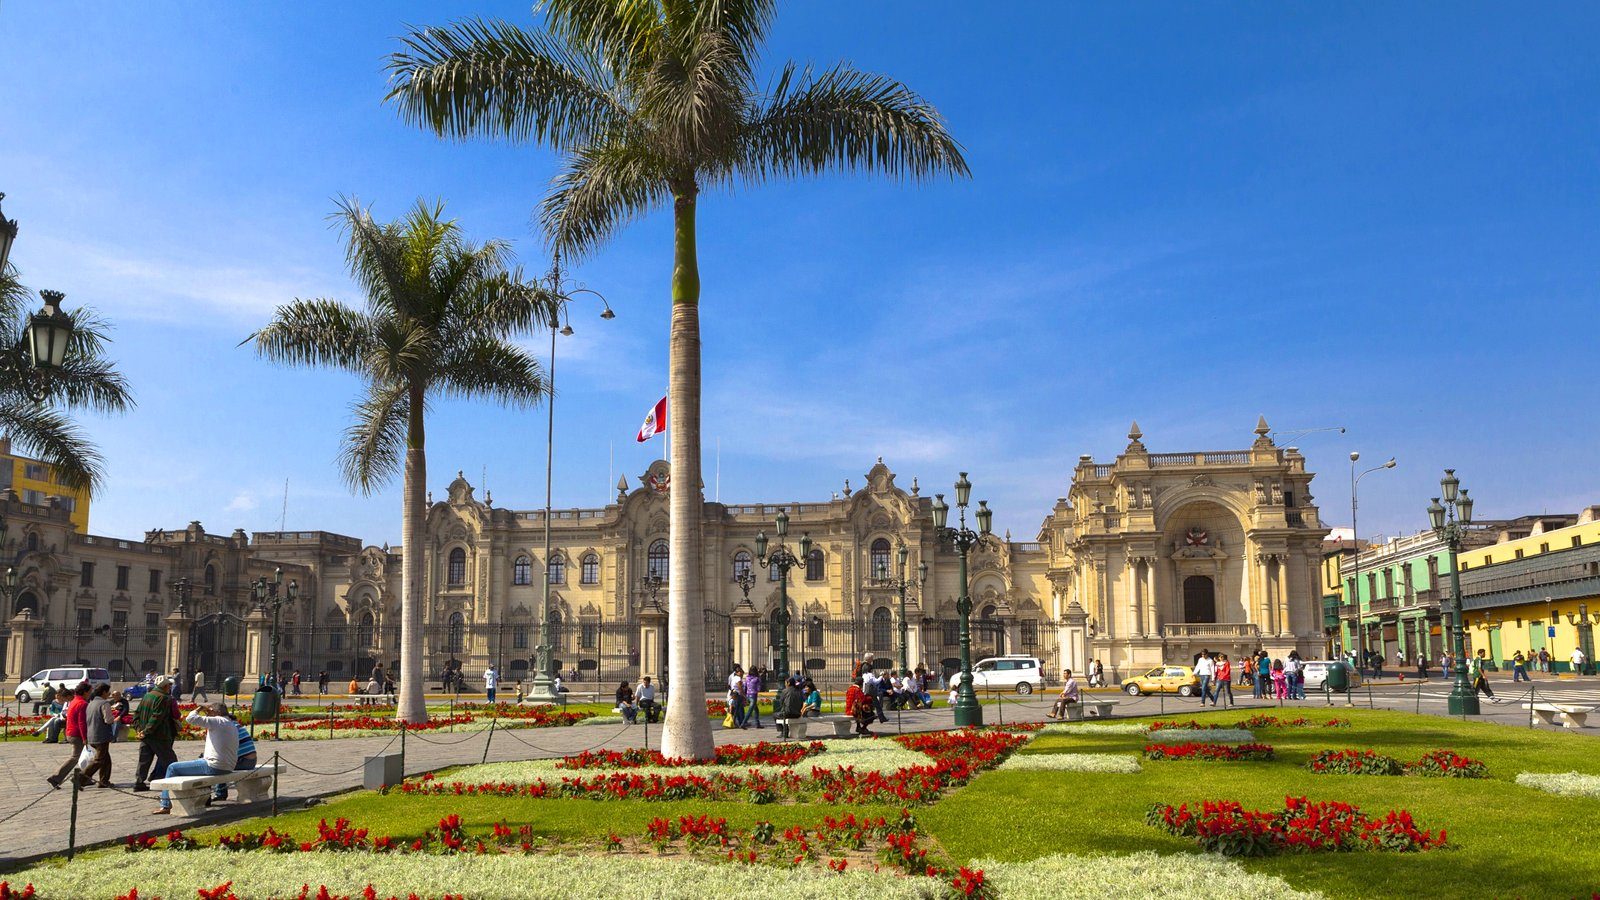 Government Palace showing a garden, heritage elements and an administrative buidling